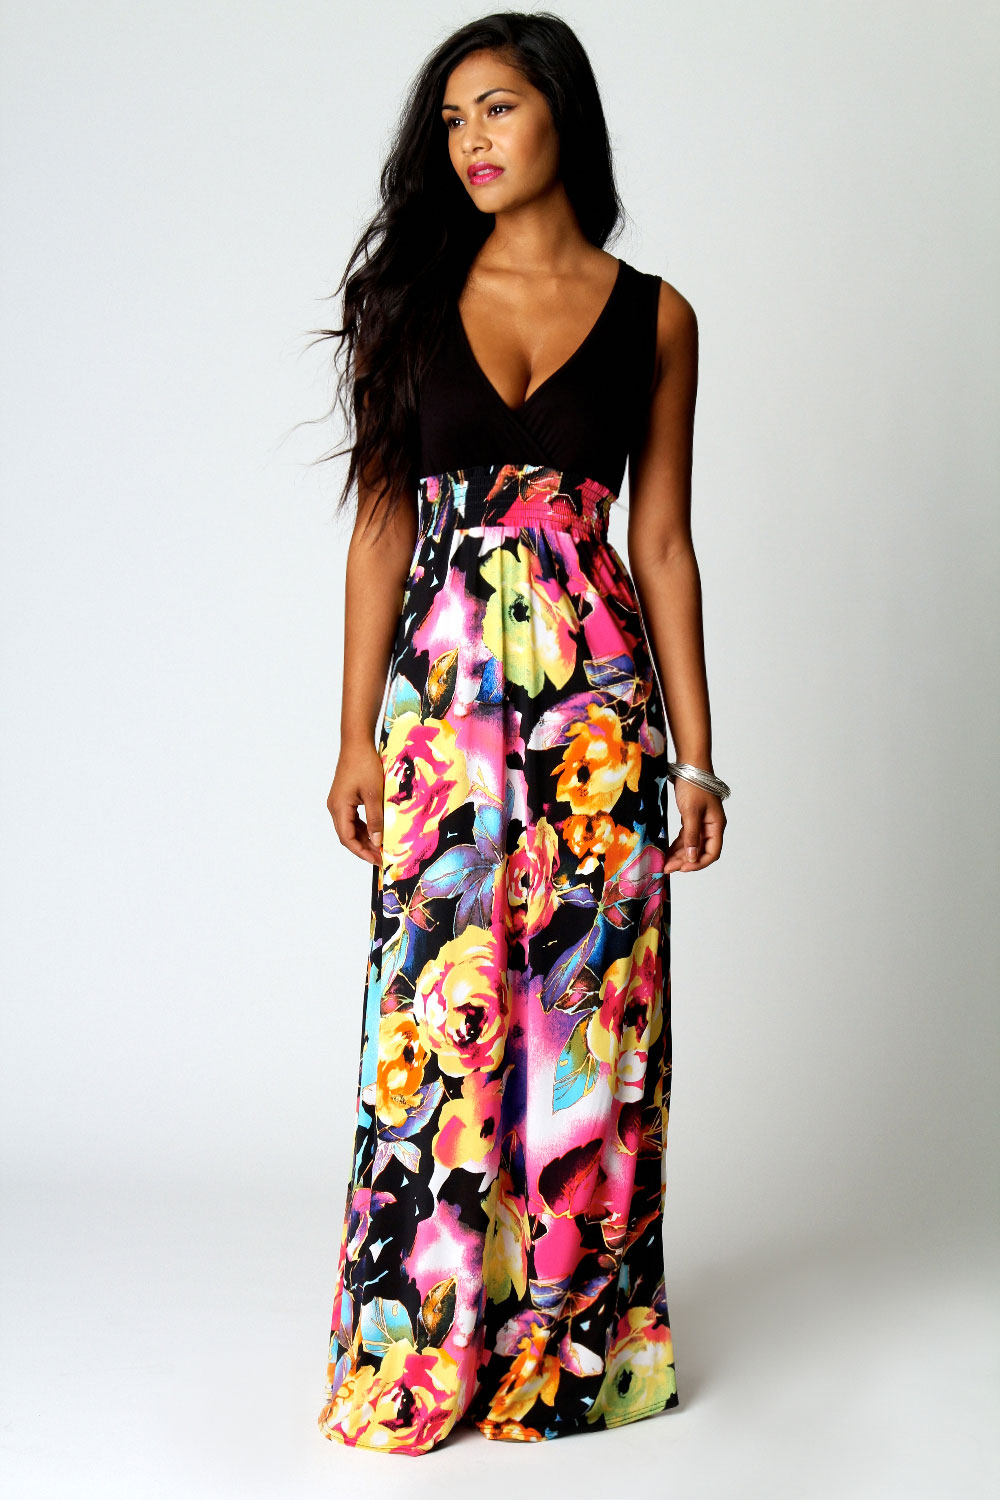 Boohoo Kiera Rose Print V Neck Maxi Dress in Black | eBay